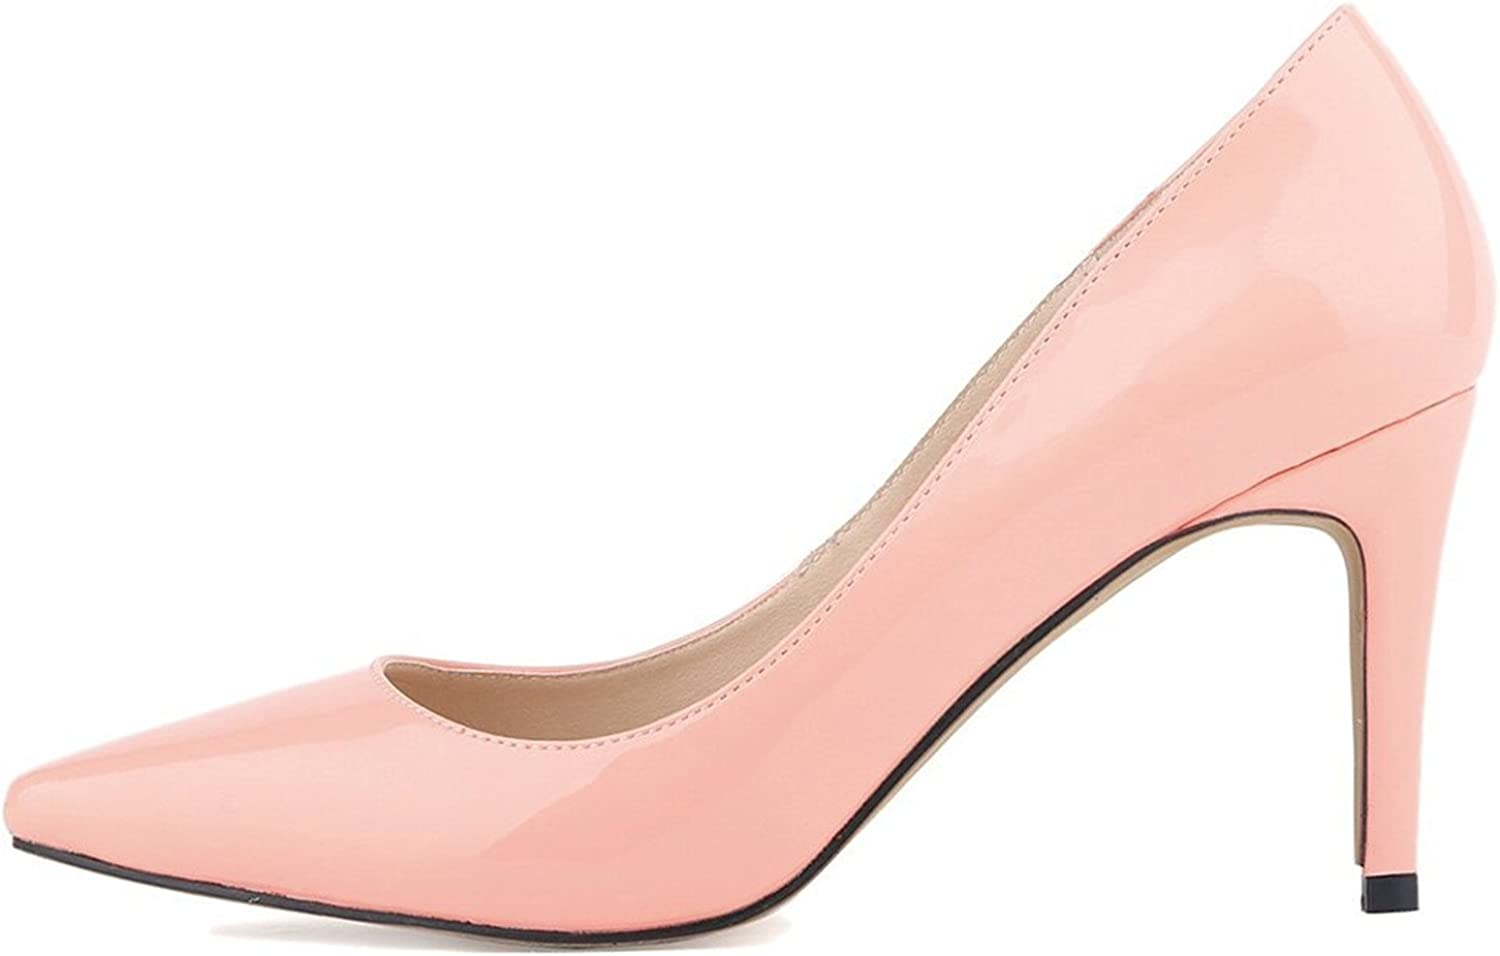 Oppicong Womens shoes Closed Toe High Heels Women's Pointed Slender Leather Pumps